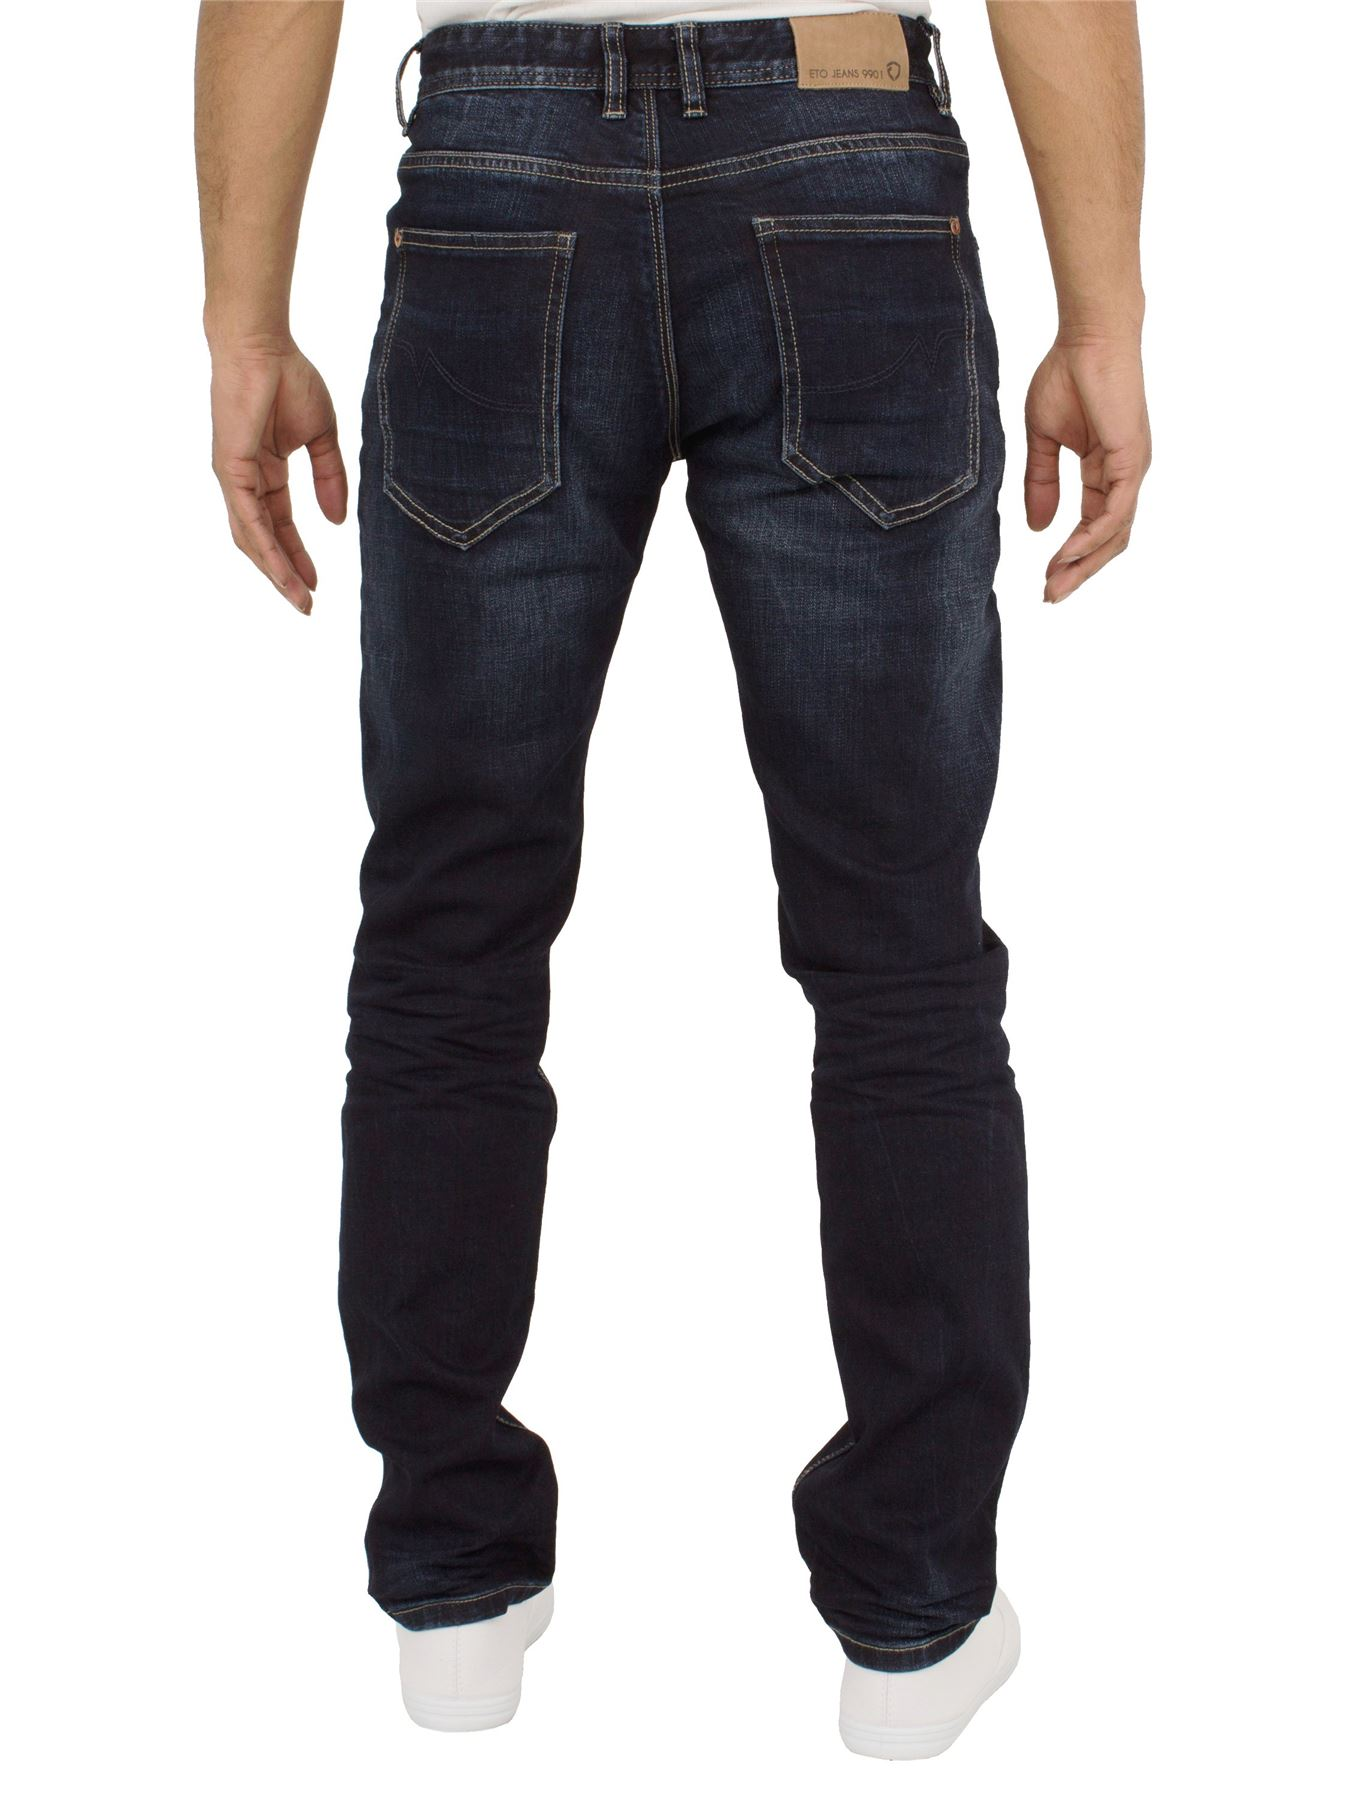 Eto-Designer-Mens-Tapered-Jeans-Slim-Fit-Stretch-Denim-Trouser-Pants-All-Waists thumbnail 16